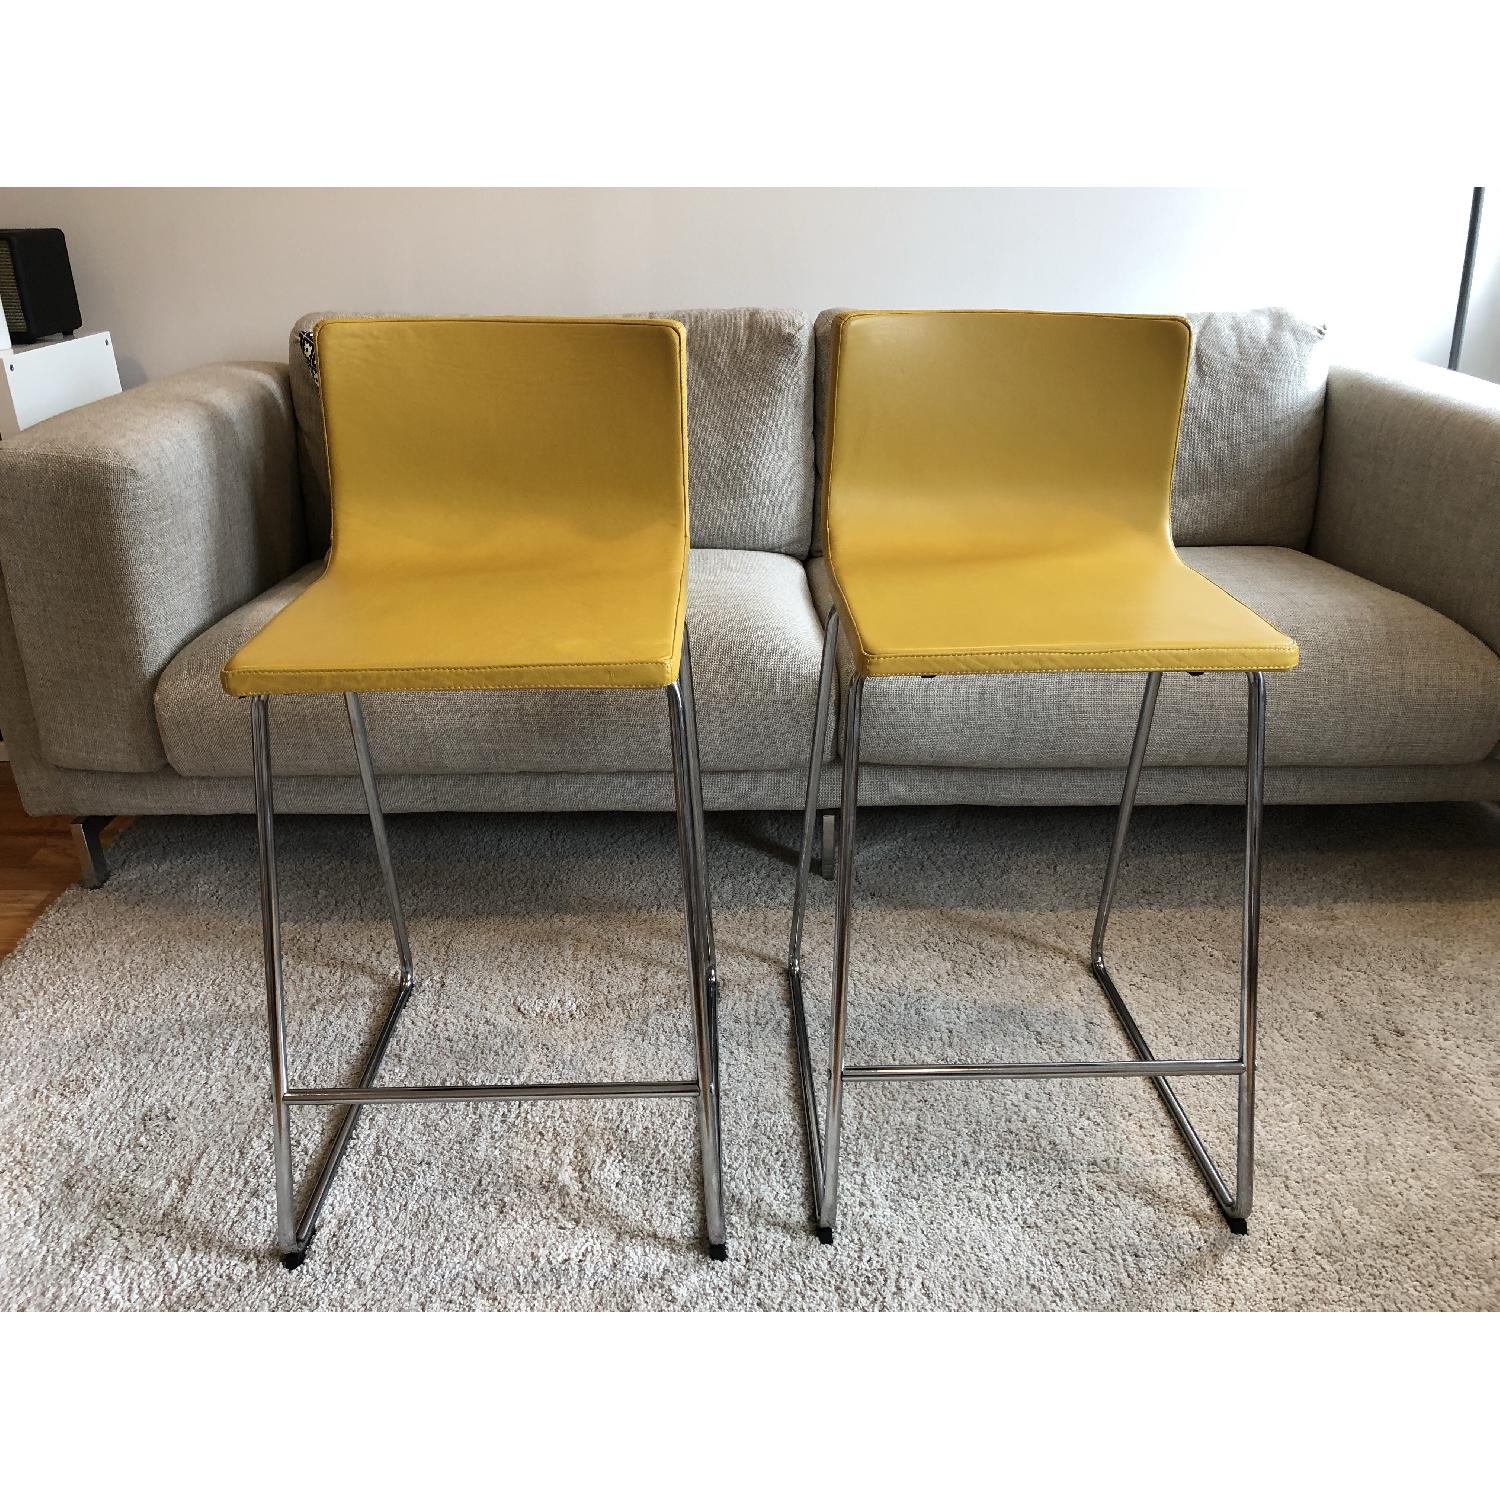 Ikea Bernhard Bar Stools w/ Backrest